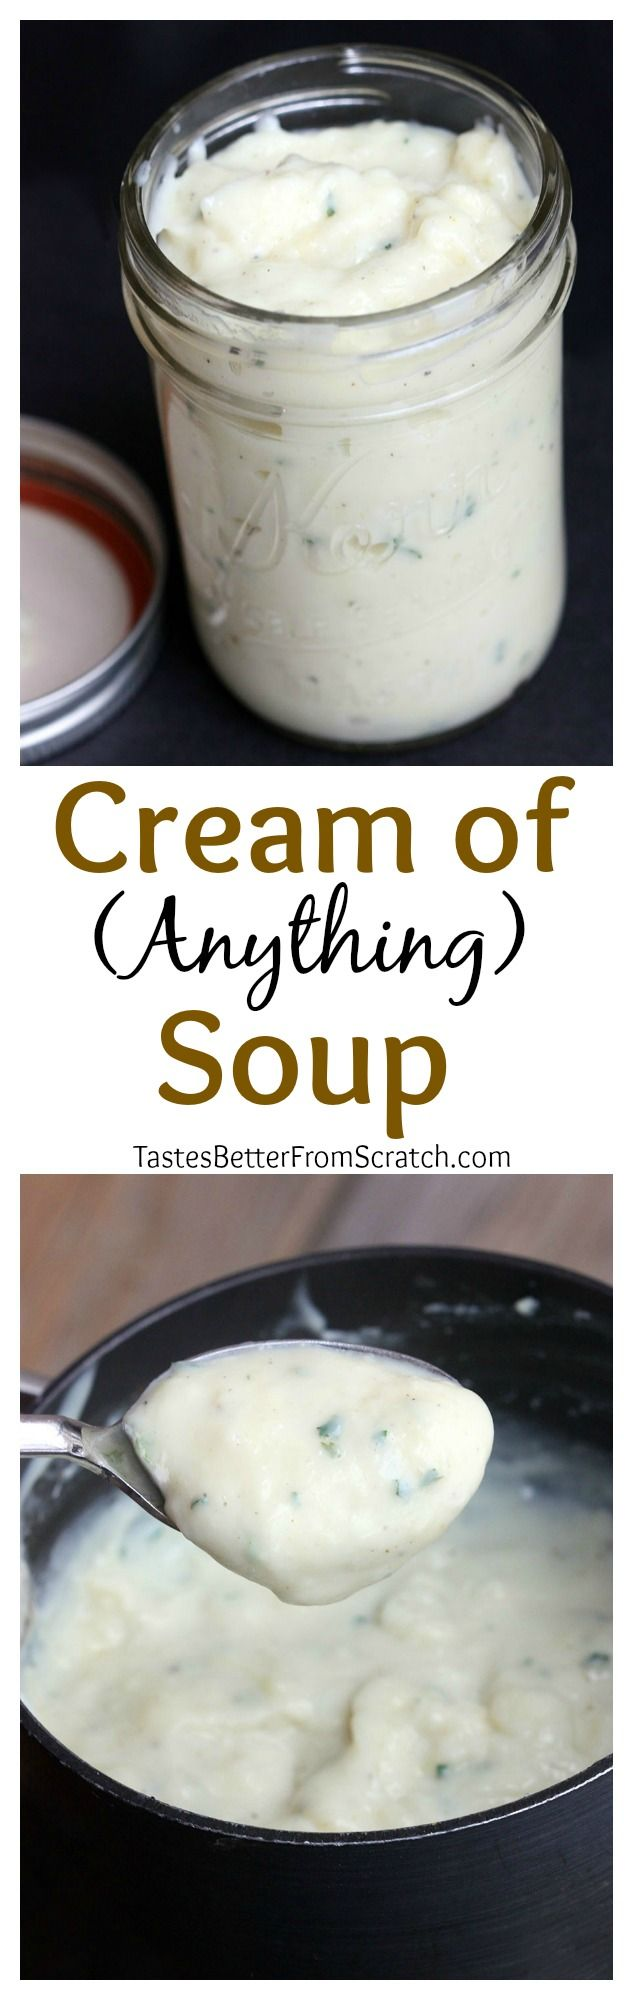 Easy homemade replacement for any Condensed Cream of Soup recipes including Cream of Chicken, Cream of Mushroom, Cream of Celery. Makes the equivalent of one (10.75 oz) can.